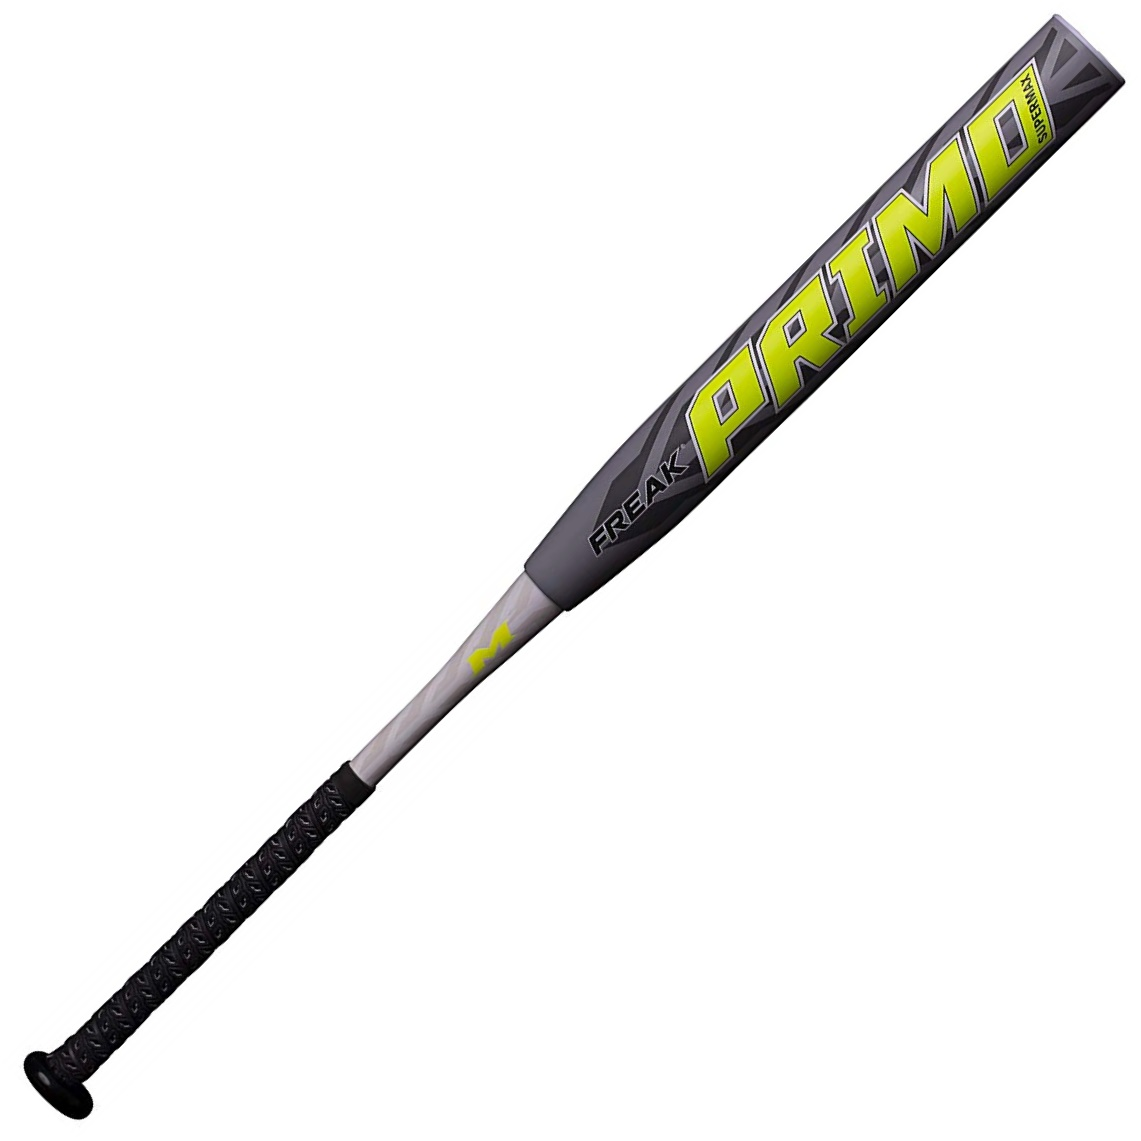 miken-freak-primo-14-inch-supermax-usssa-slowpitch-bat-34-inch-25-oz MPMOSU-3-25 Miken 658925043826 Mikens Triple Matrix Core + Tech increases our exclusive material volume